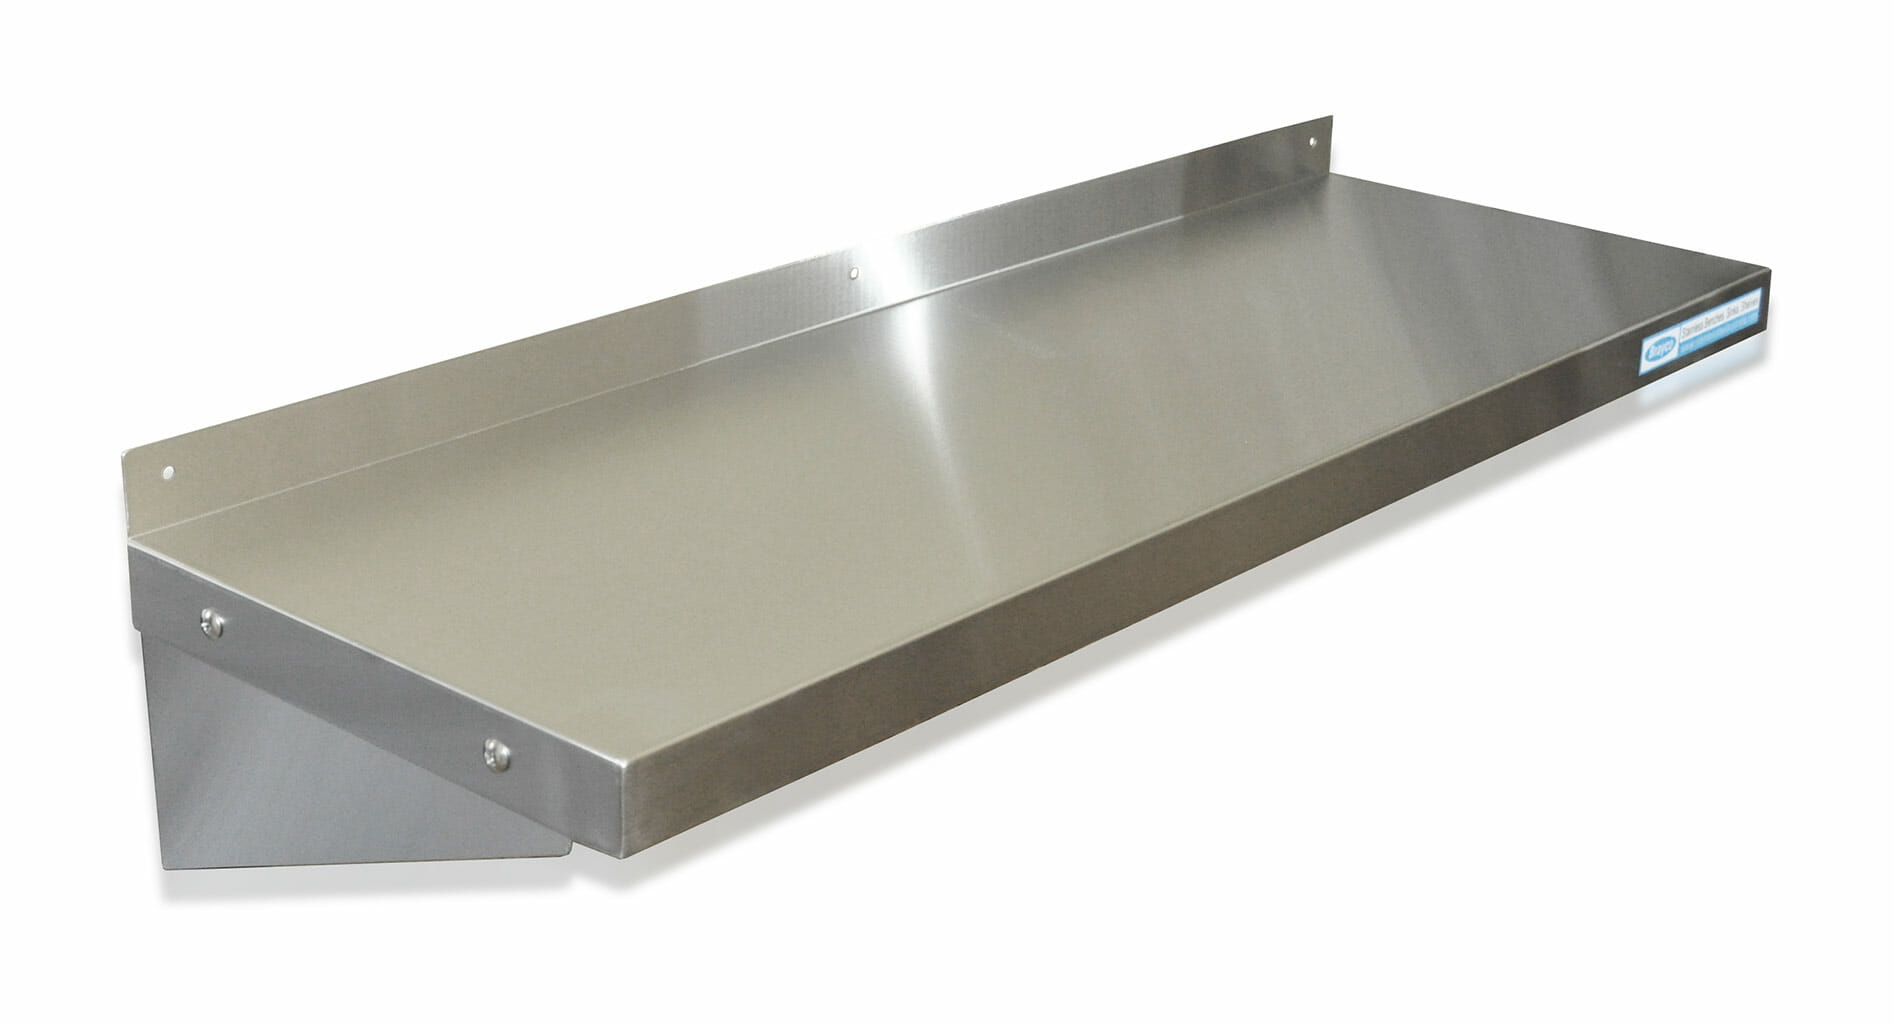 Stainless Steel Solid Wall Shelf, 900 X 300mm deep